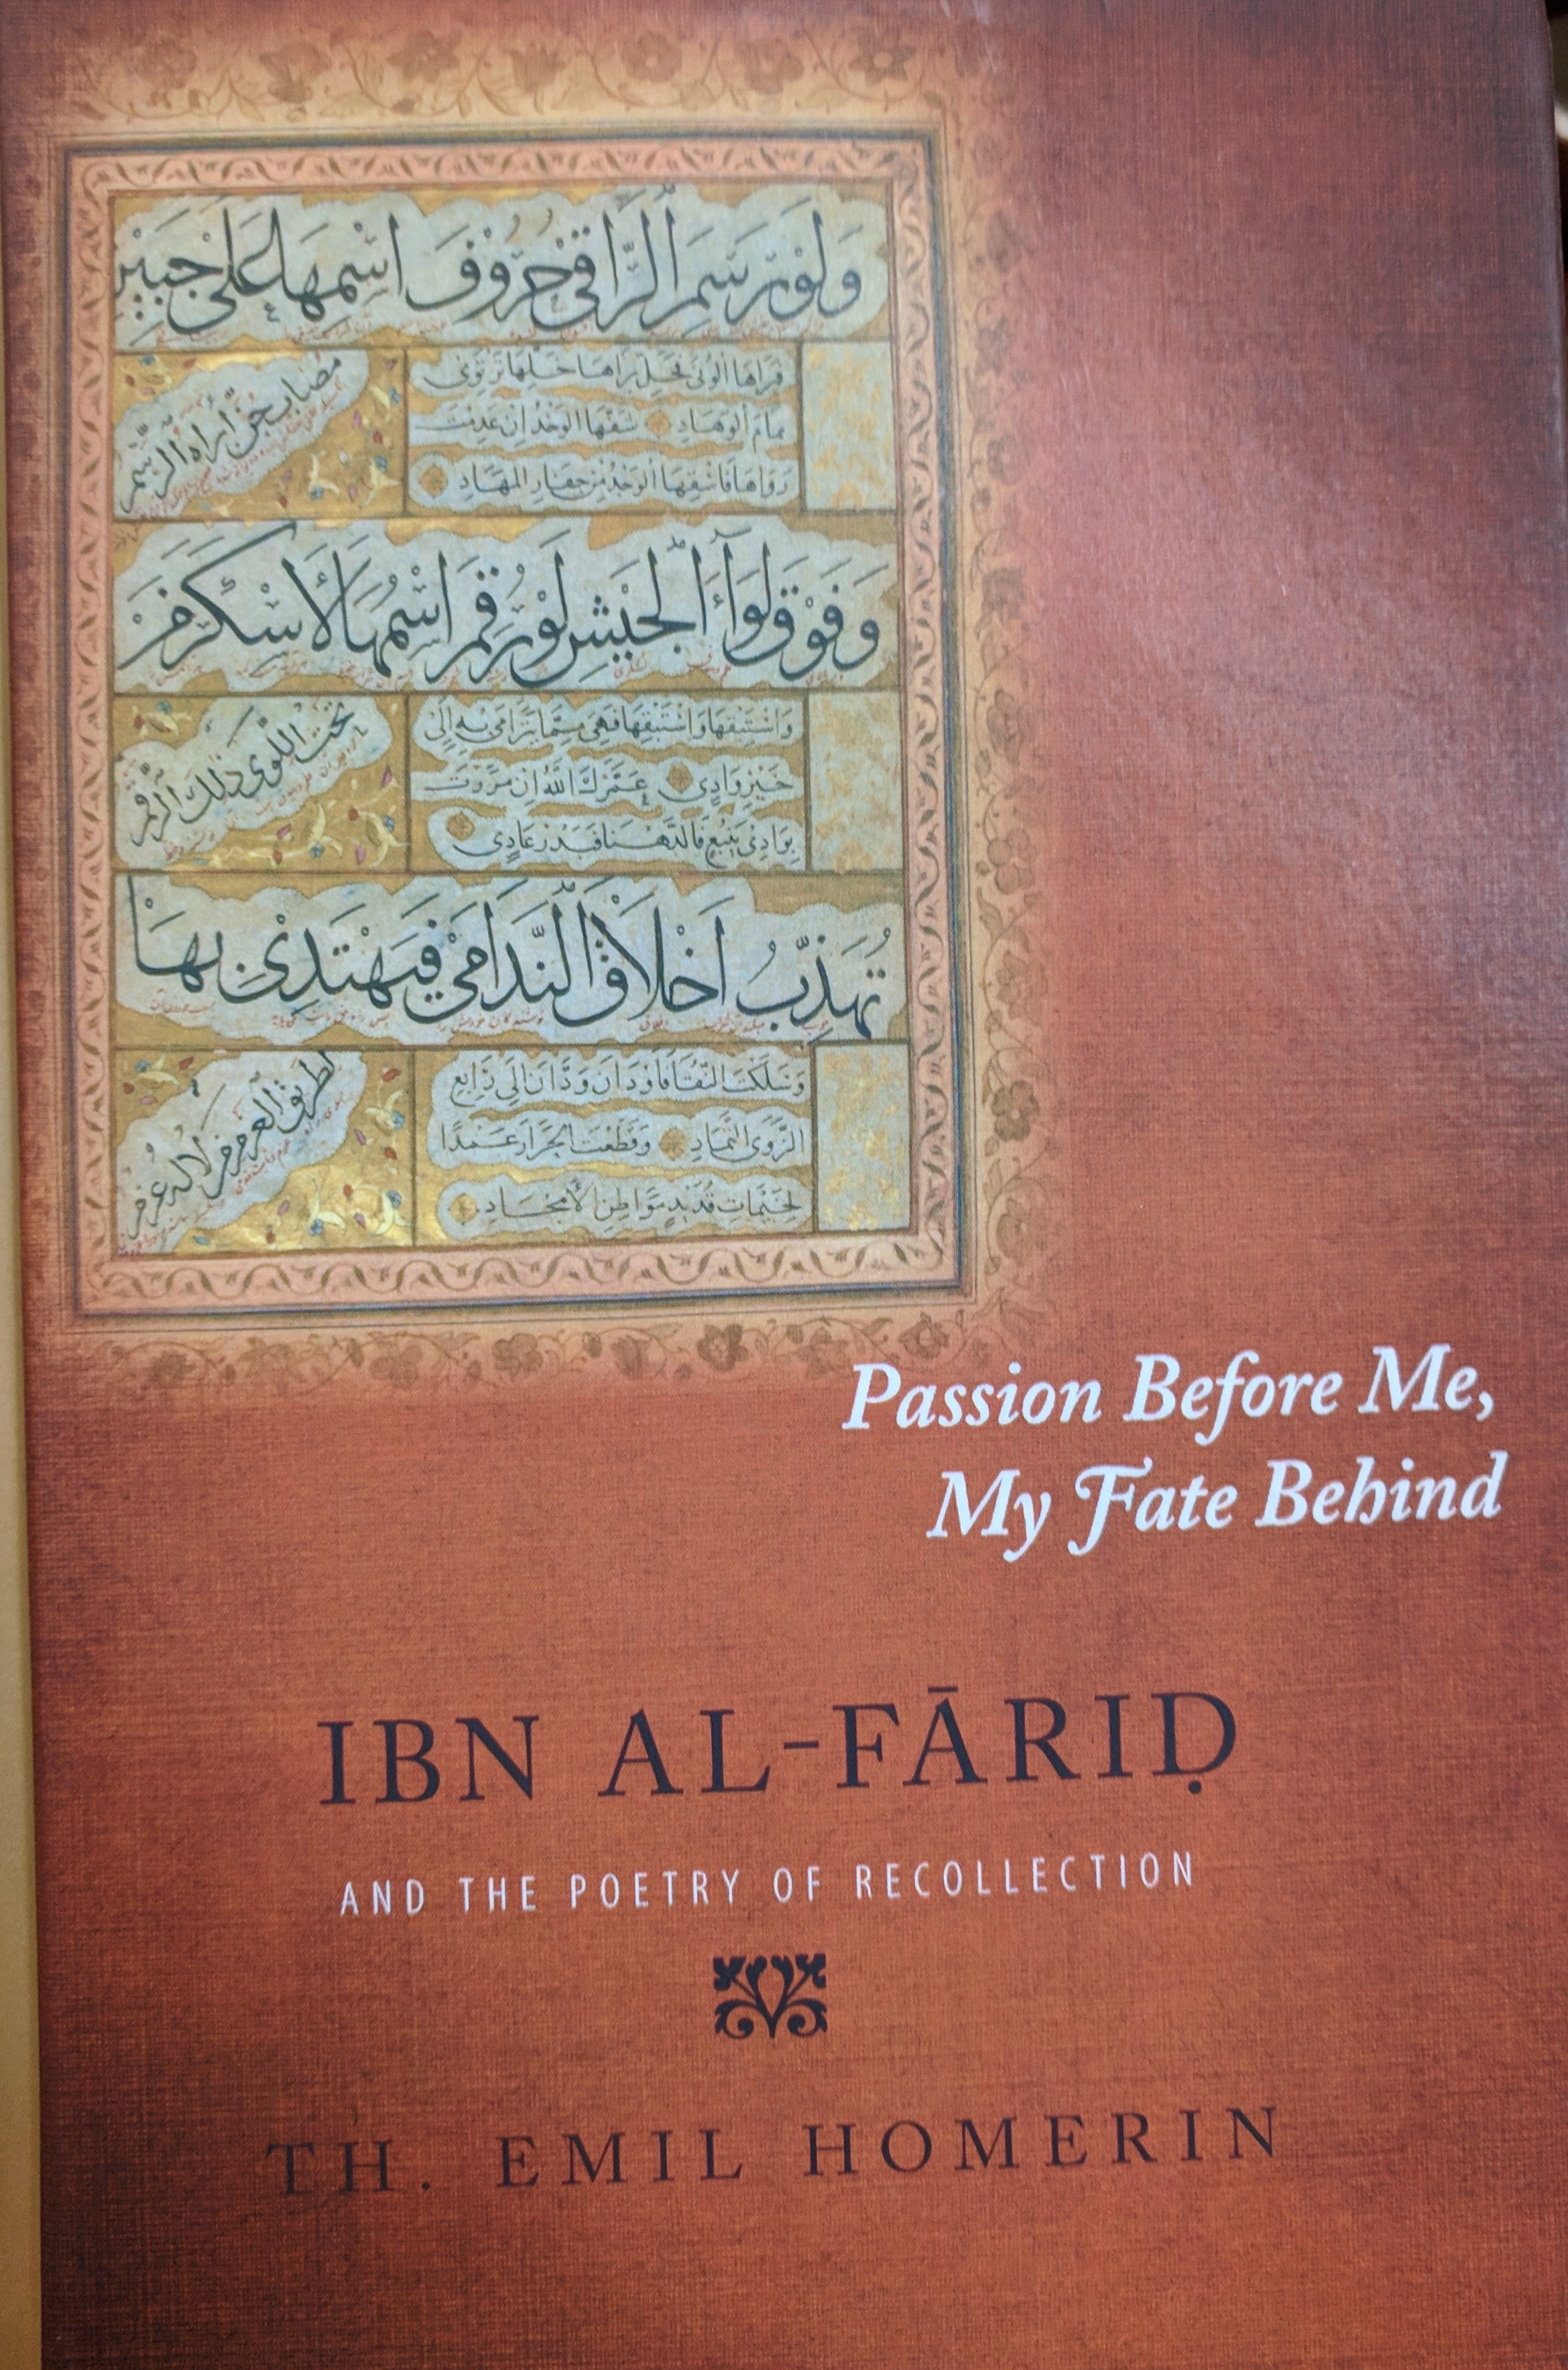 Th. Emil Homerin, Passion before me, my fate behind: Ibn al-Farid and the poetry of recollection (Albany: State University of New York Press, 2011)